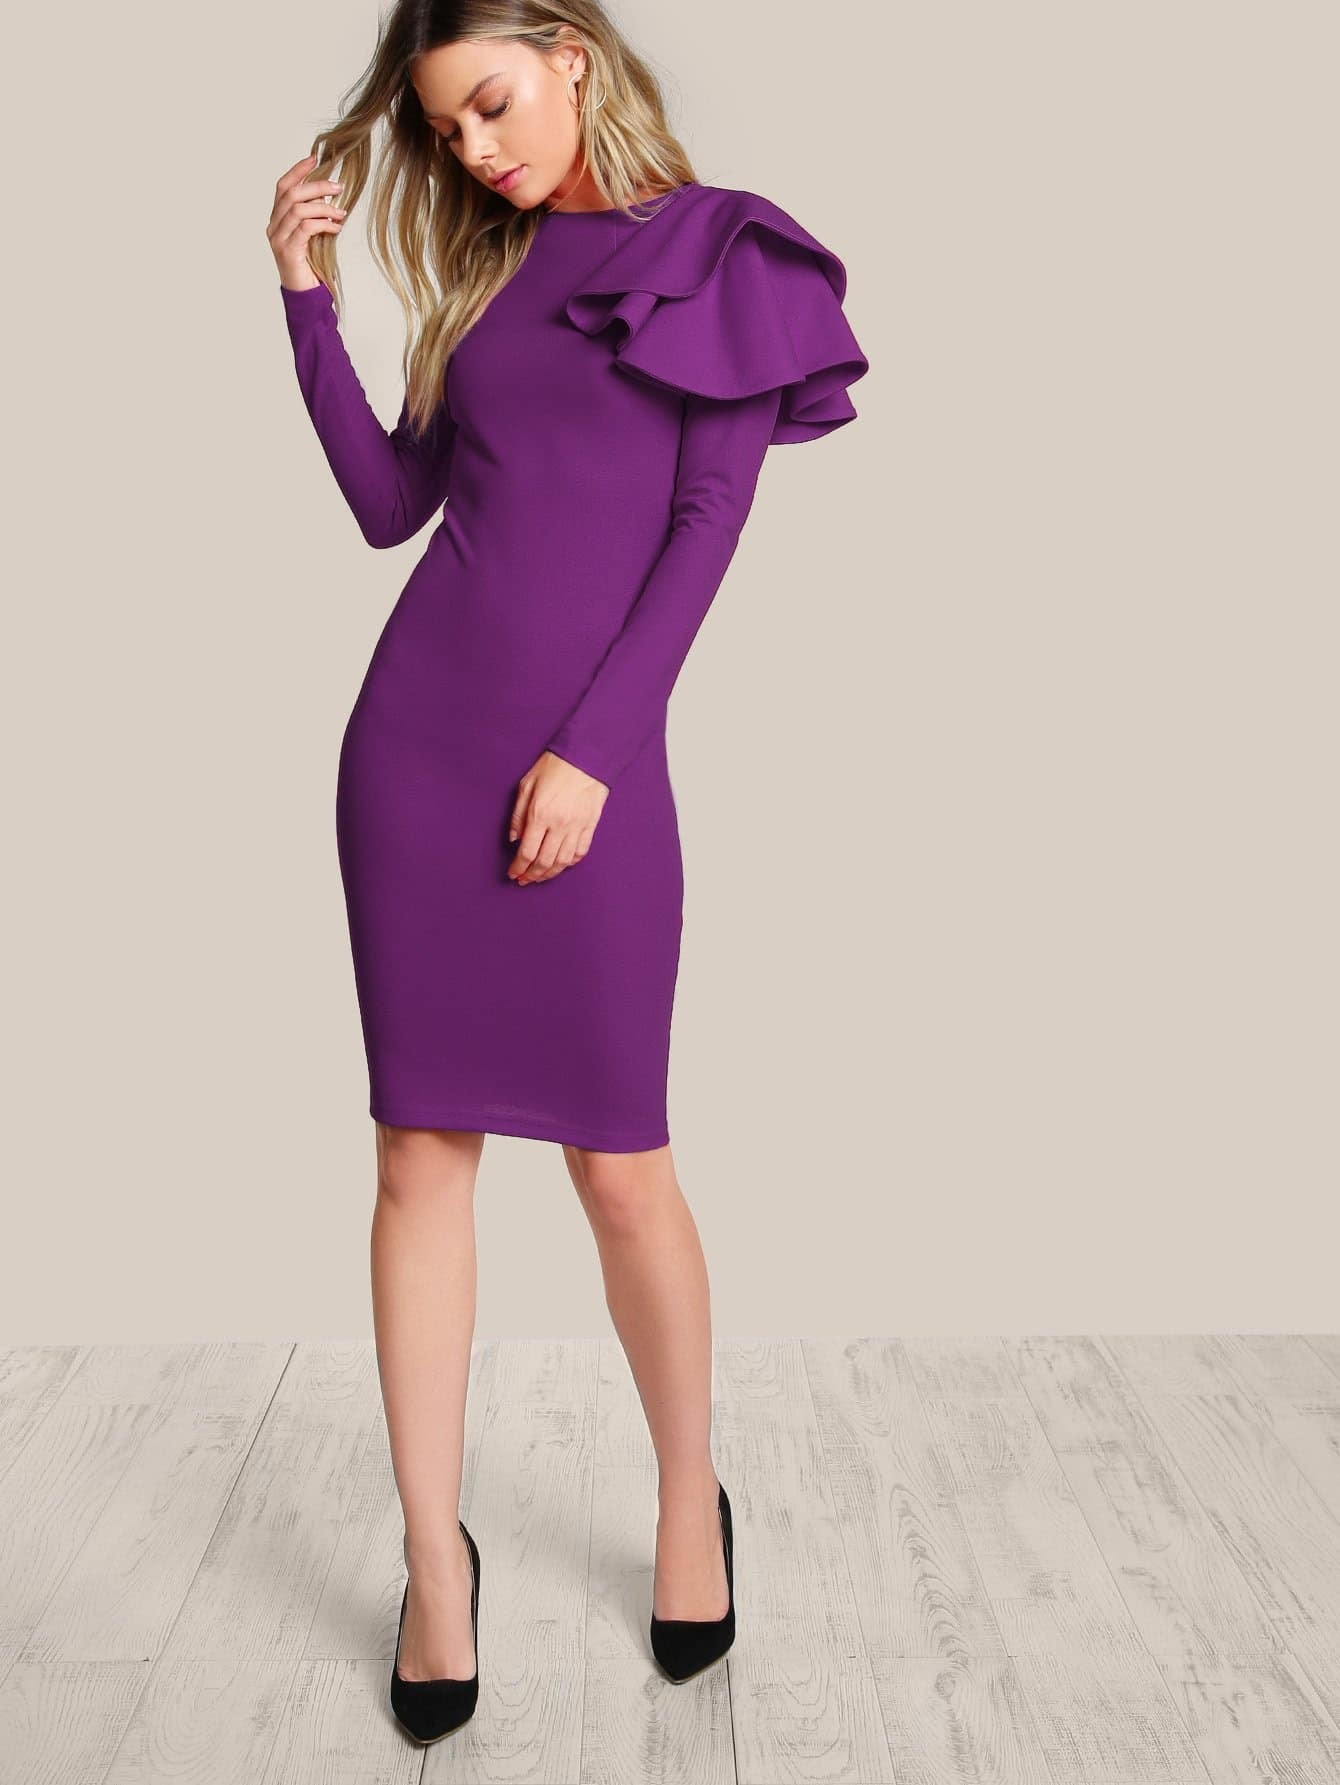 1d0126642b0 One Side Tiered Ruffle Bodycon Dress